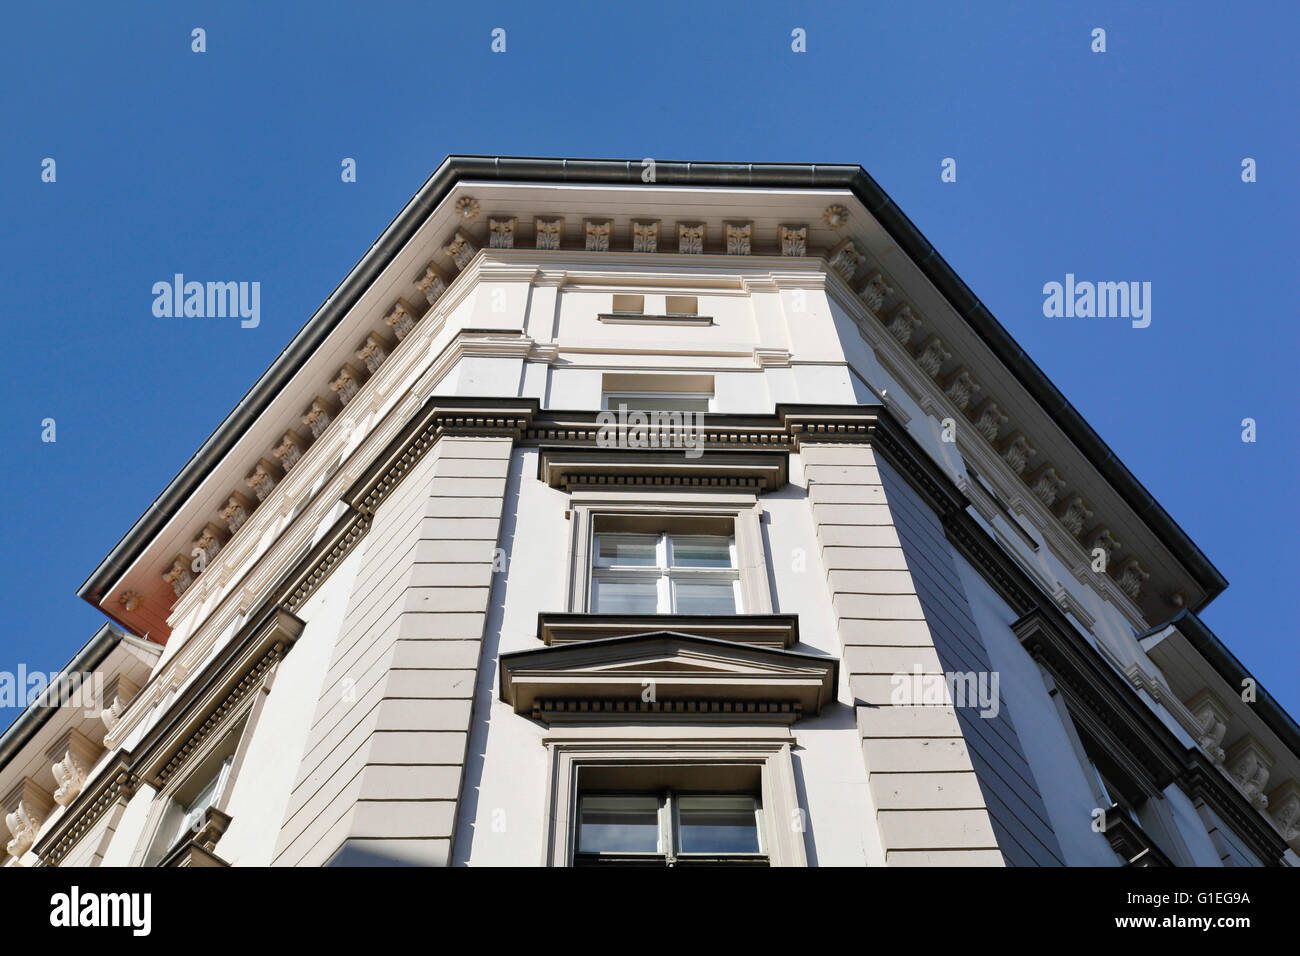 Buro, 53 Reichenberger Strasse. Angled view of an exterior wall of the office building and windows. - Stock Image